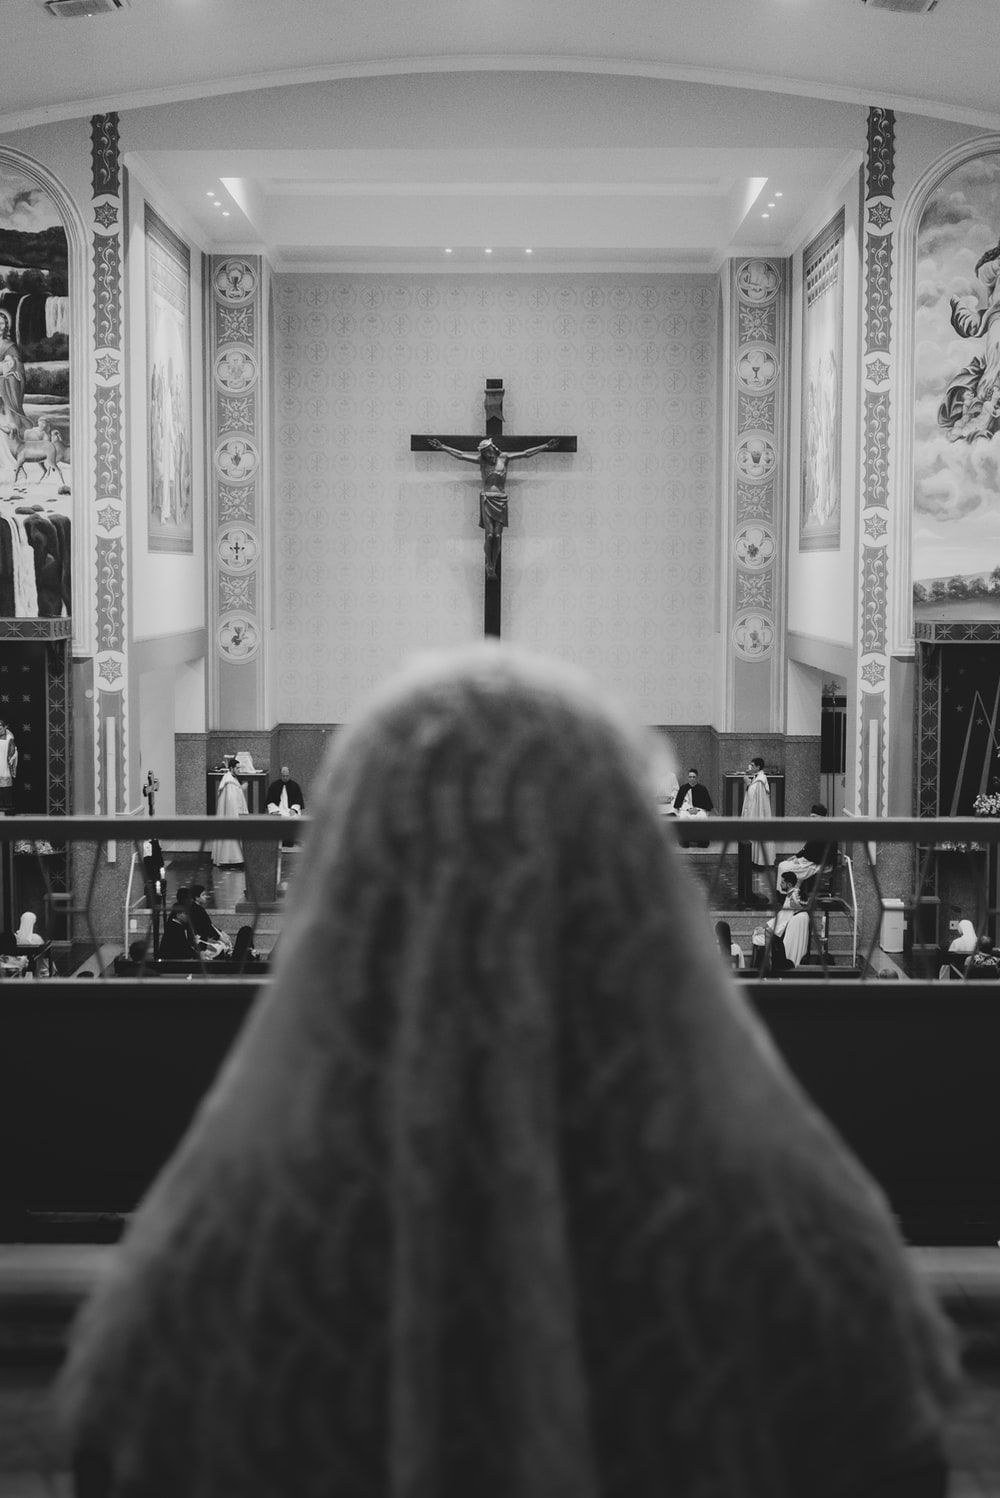 grayscale photo of cross on top of the table